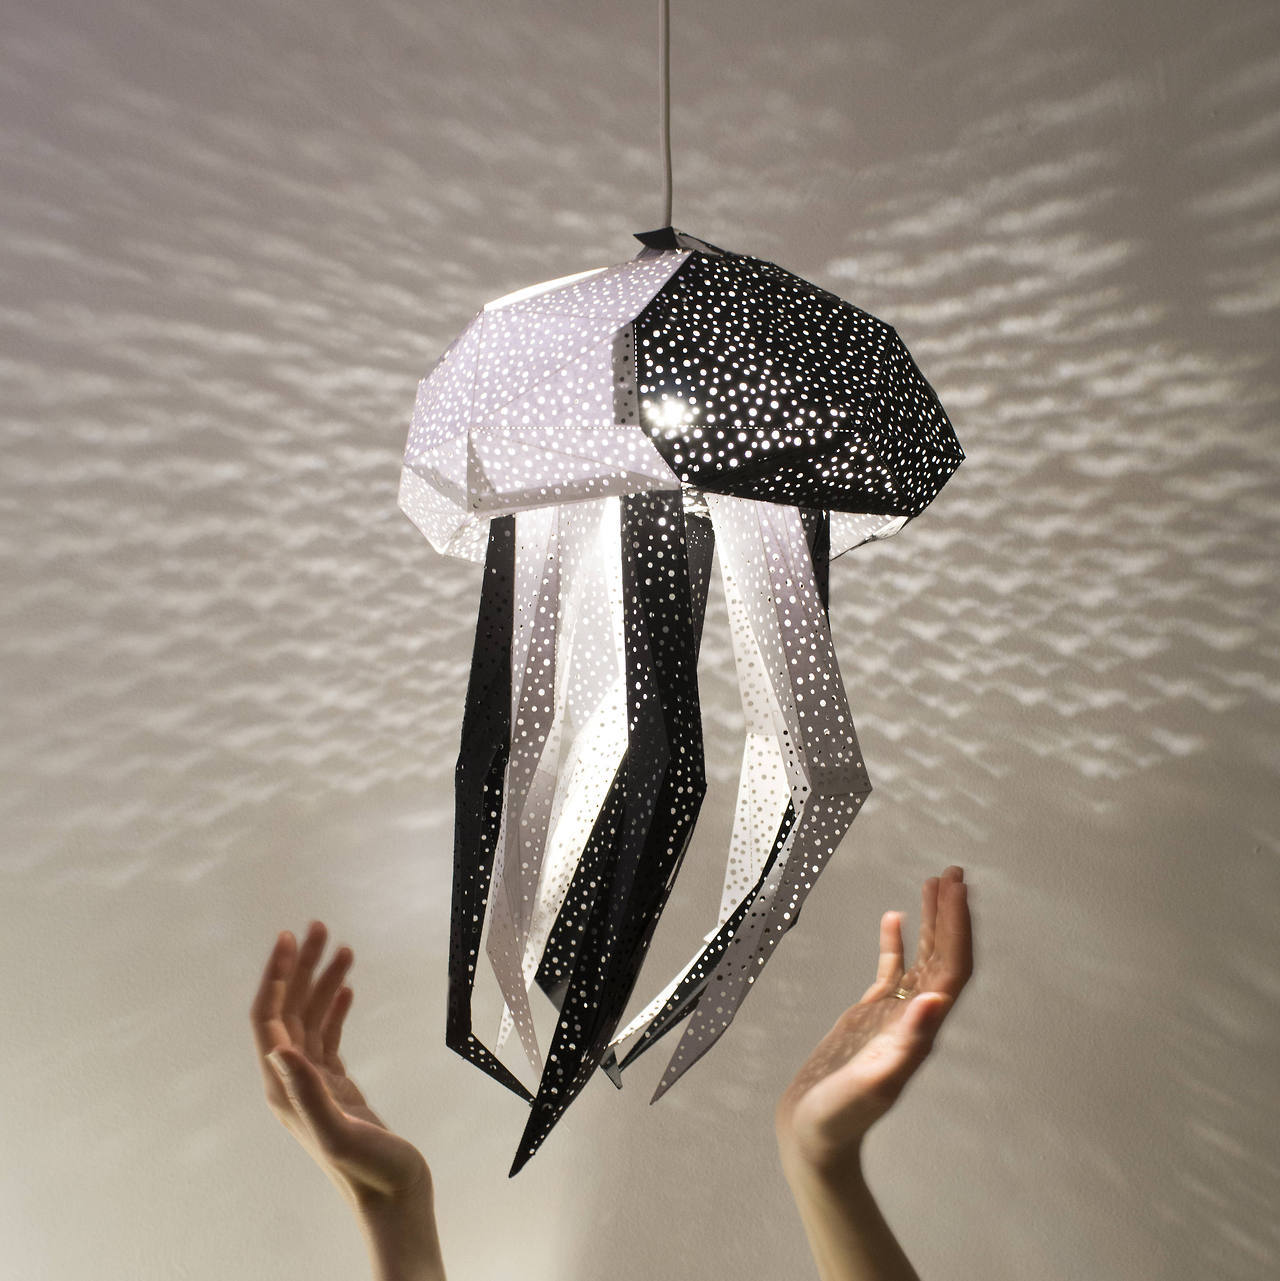 DIY Papercraft Light Shades of Aquatic Life by Vasili